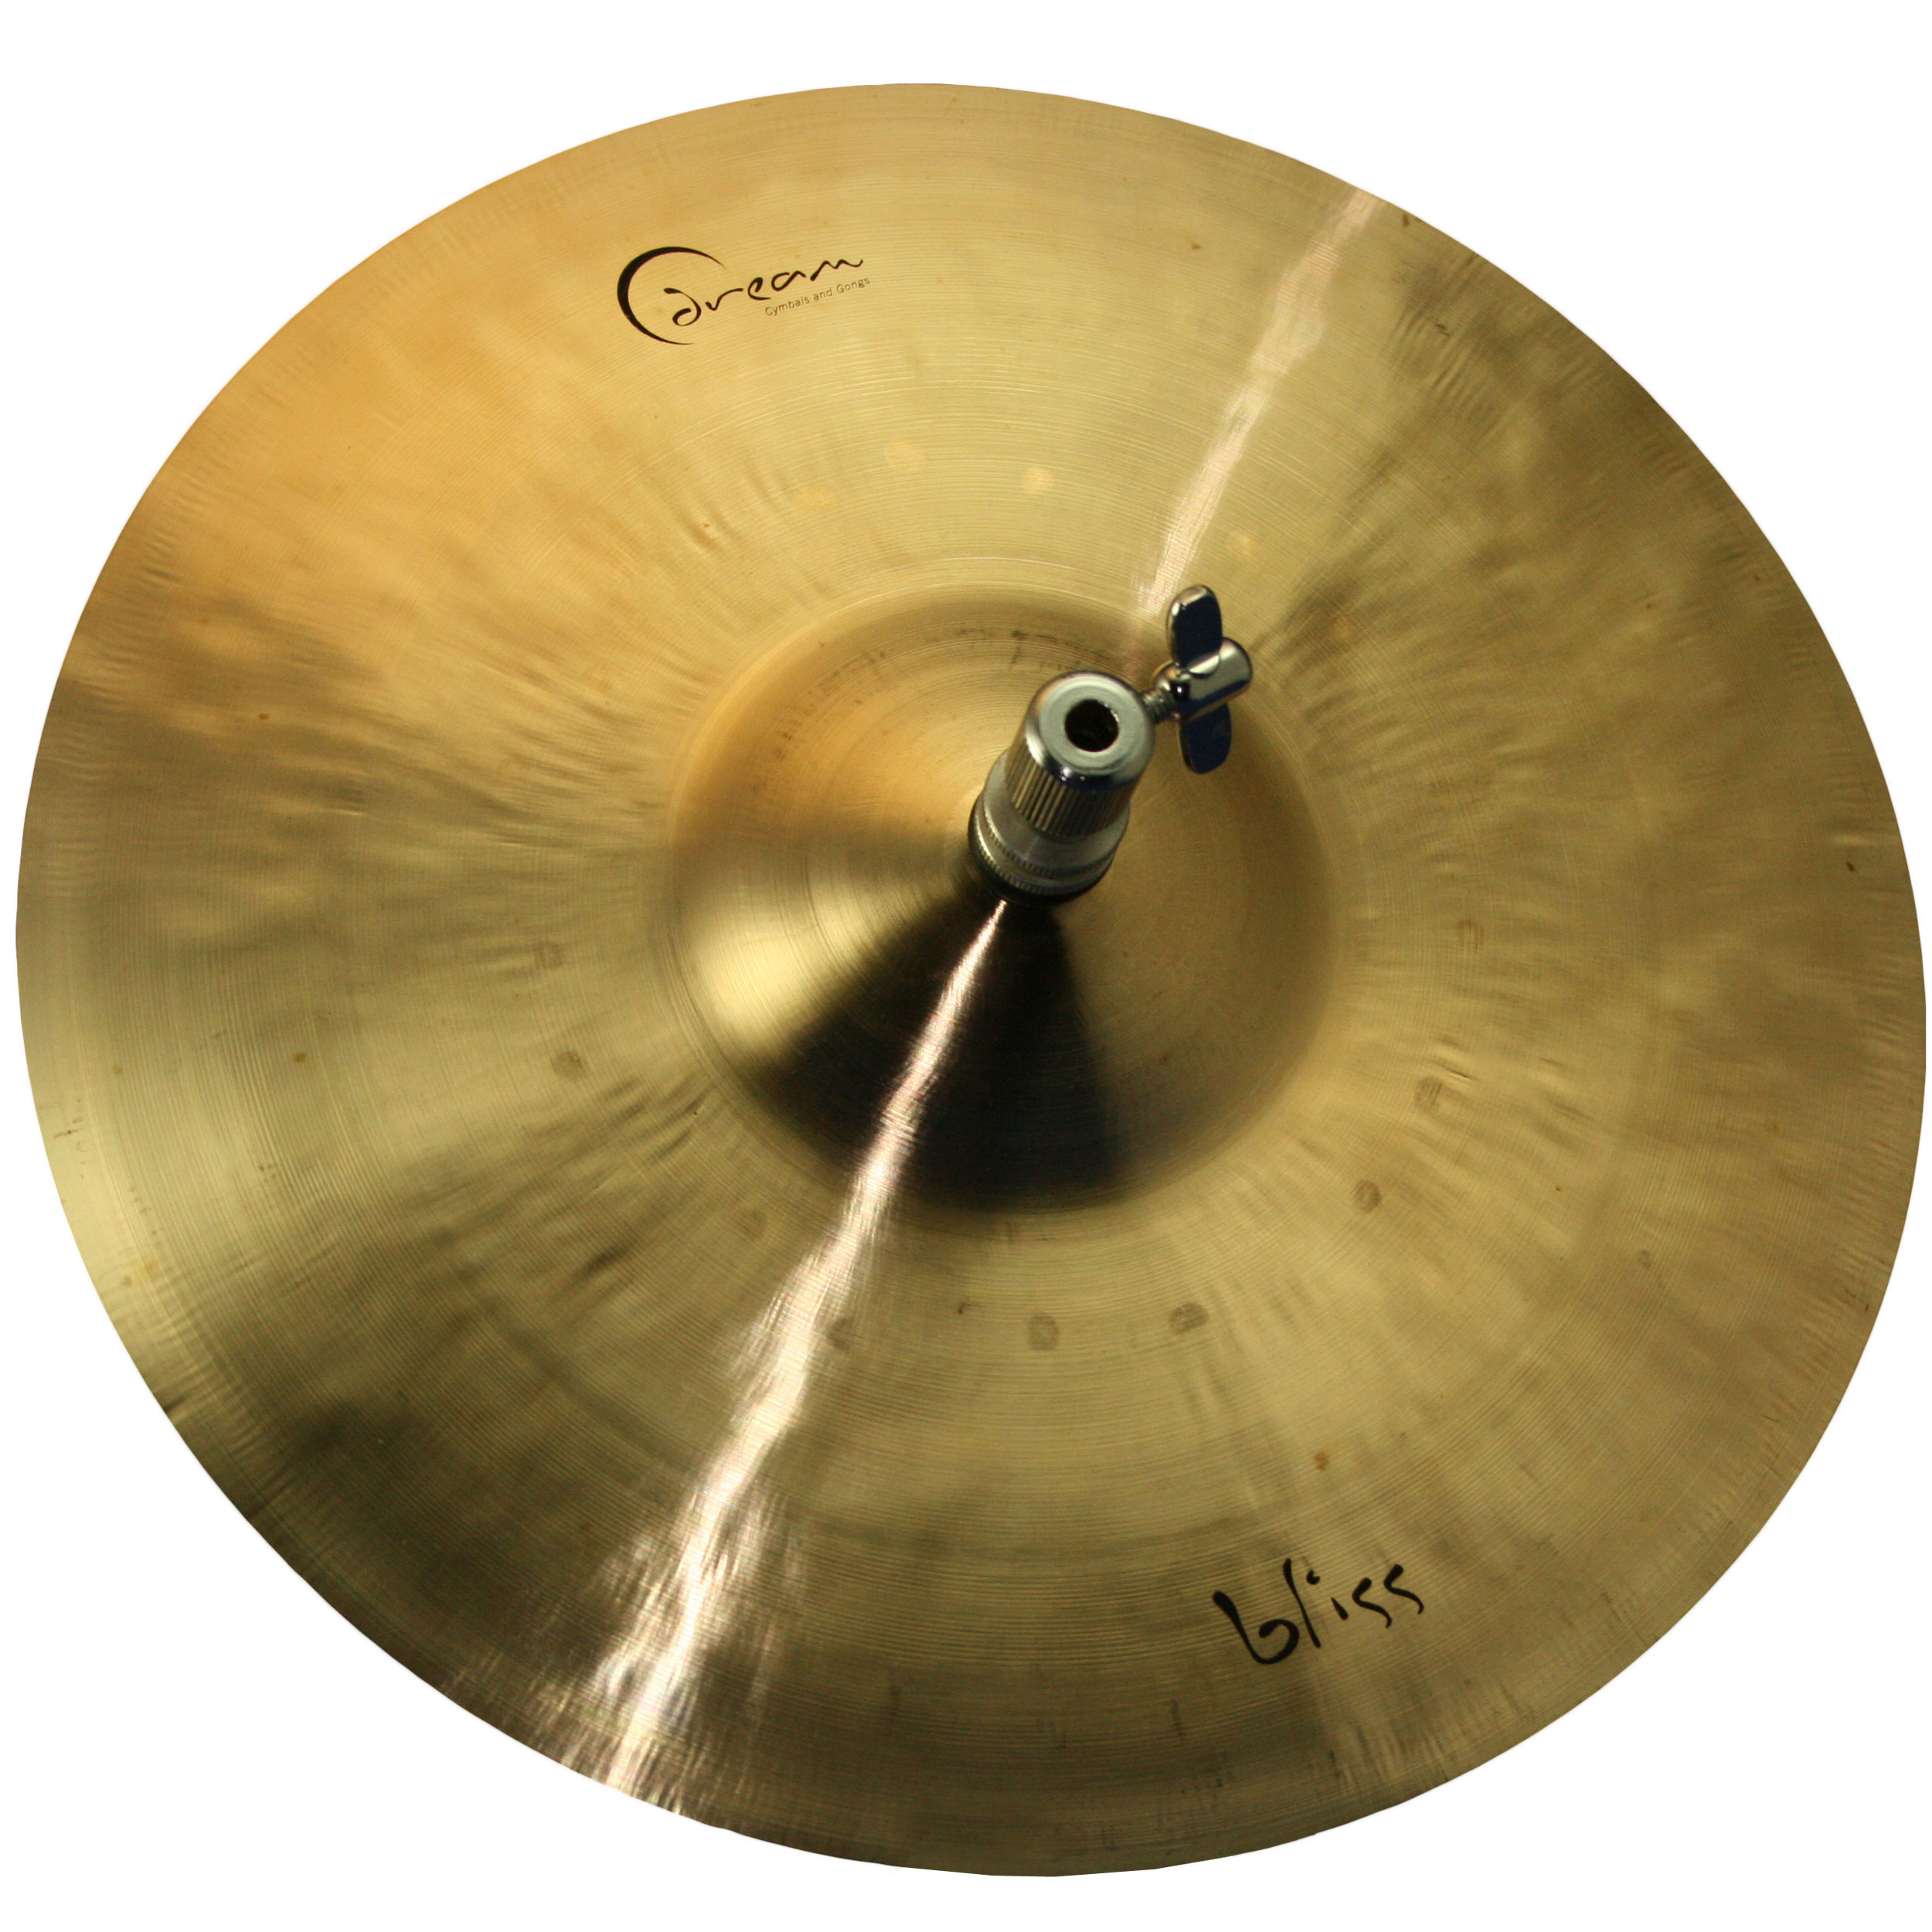 "Dream 12"" Bliss Hi Hat Cymbals"